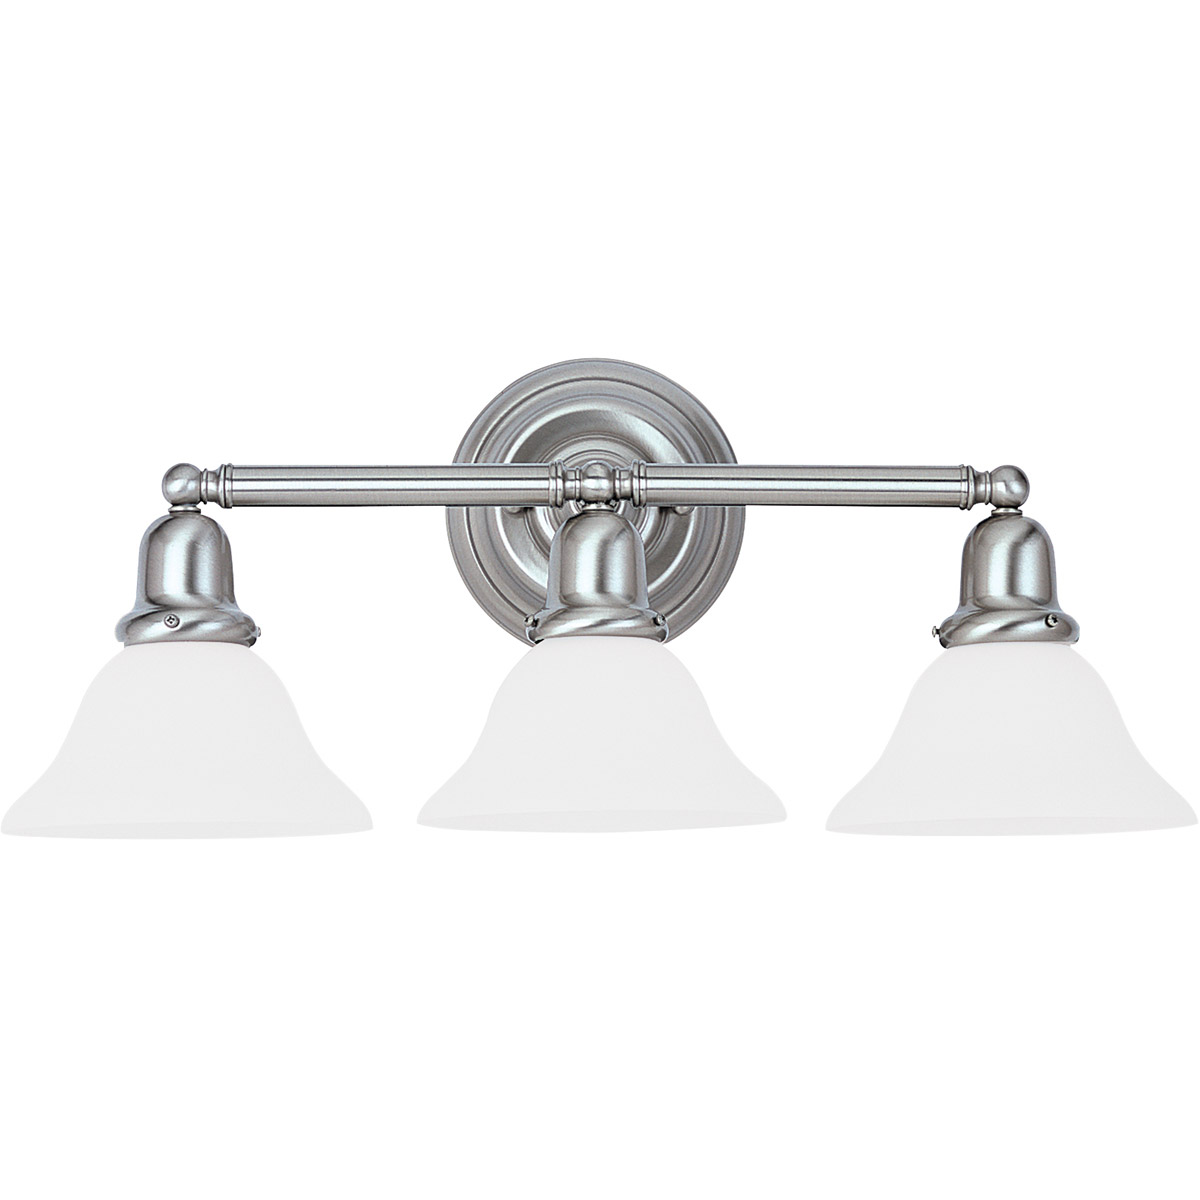 Sea Gull Lighting Sussex 3 Light Bath Vanity in Brushed Nickel 44062-962